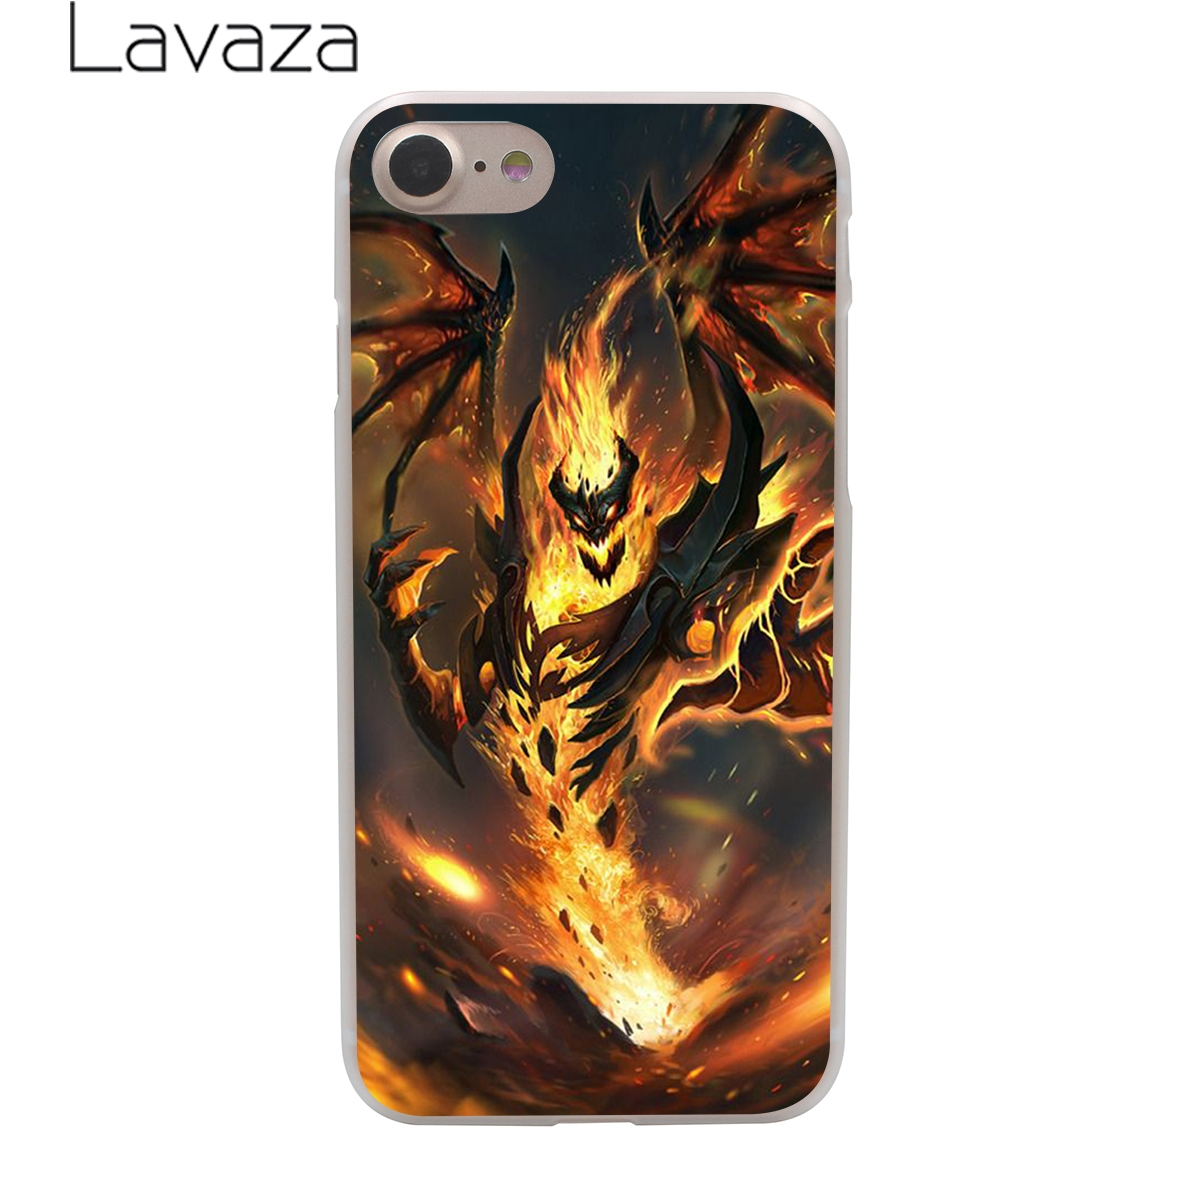 lavaza dota 2 logo hard phone cover case for apple iphone 10 x 8 7 6 6s plus 5 5s se 5c 4 4s. Black Bedroom Furniture Sets. Home Design Ideas